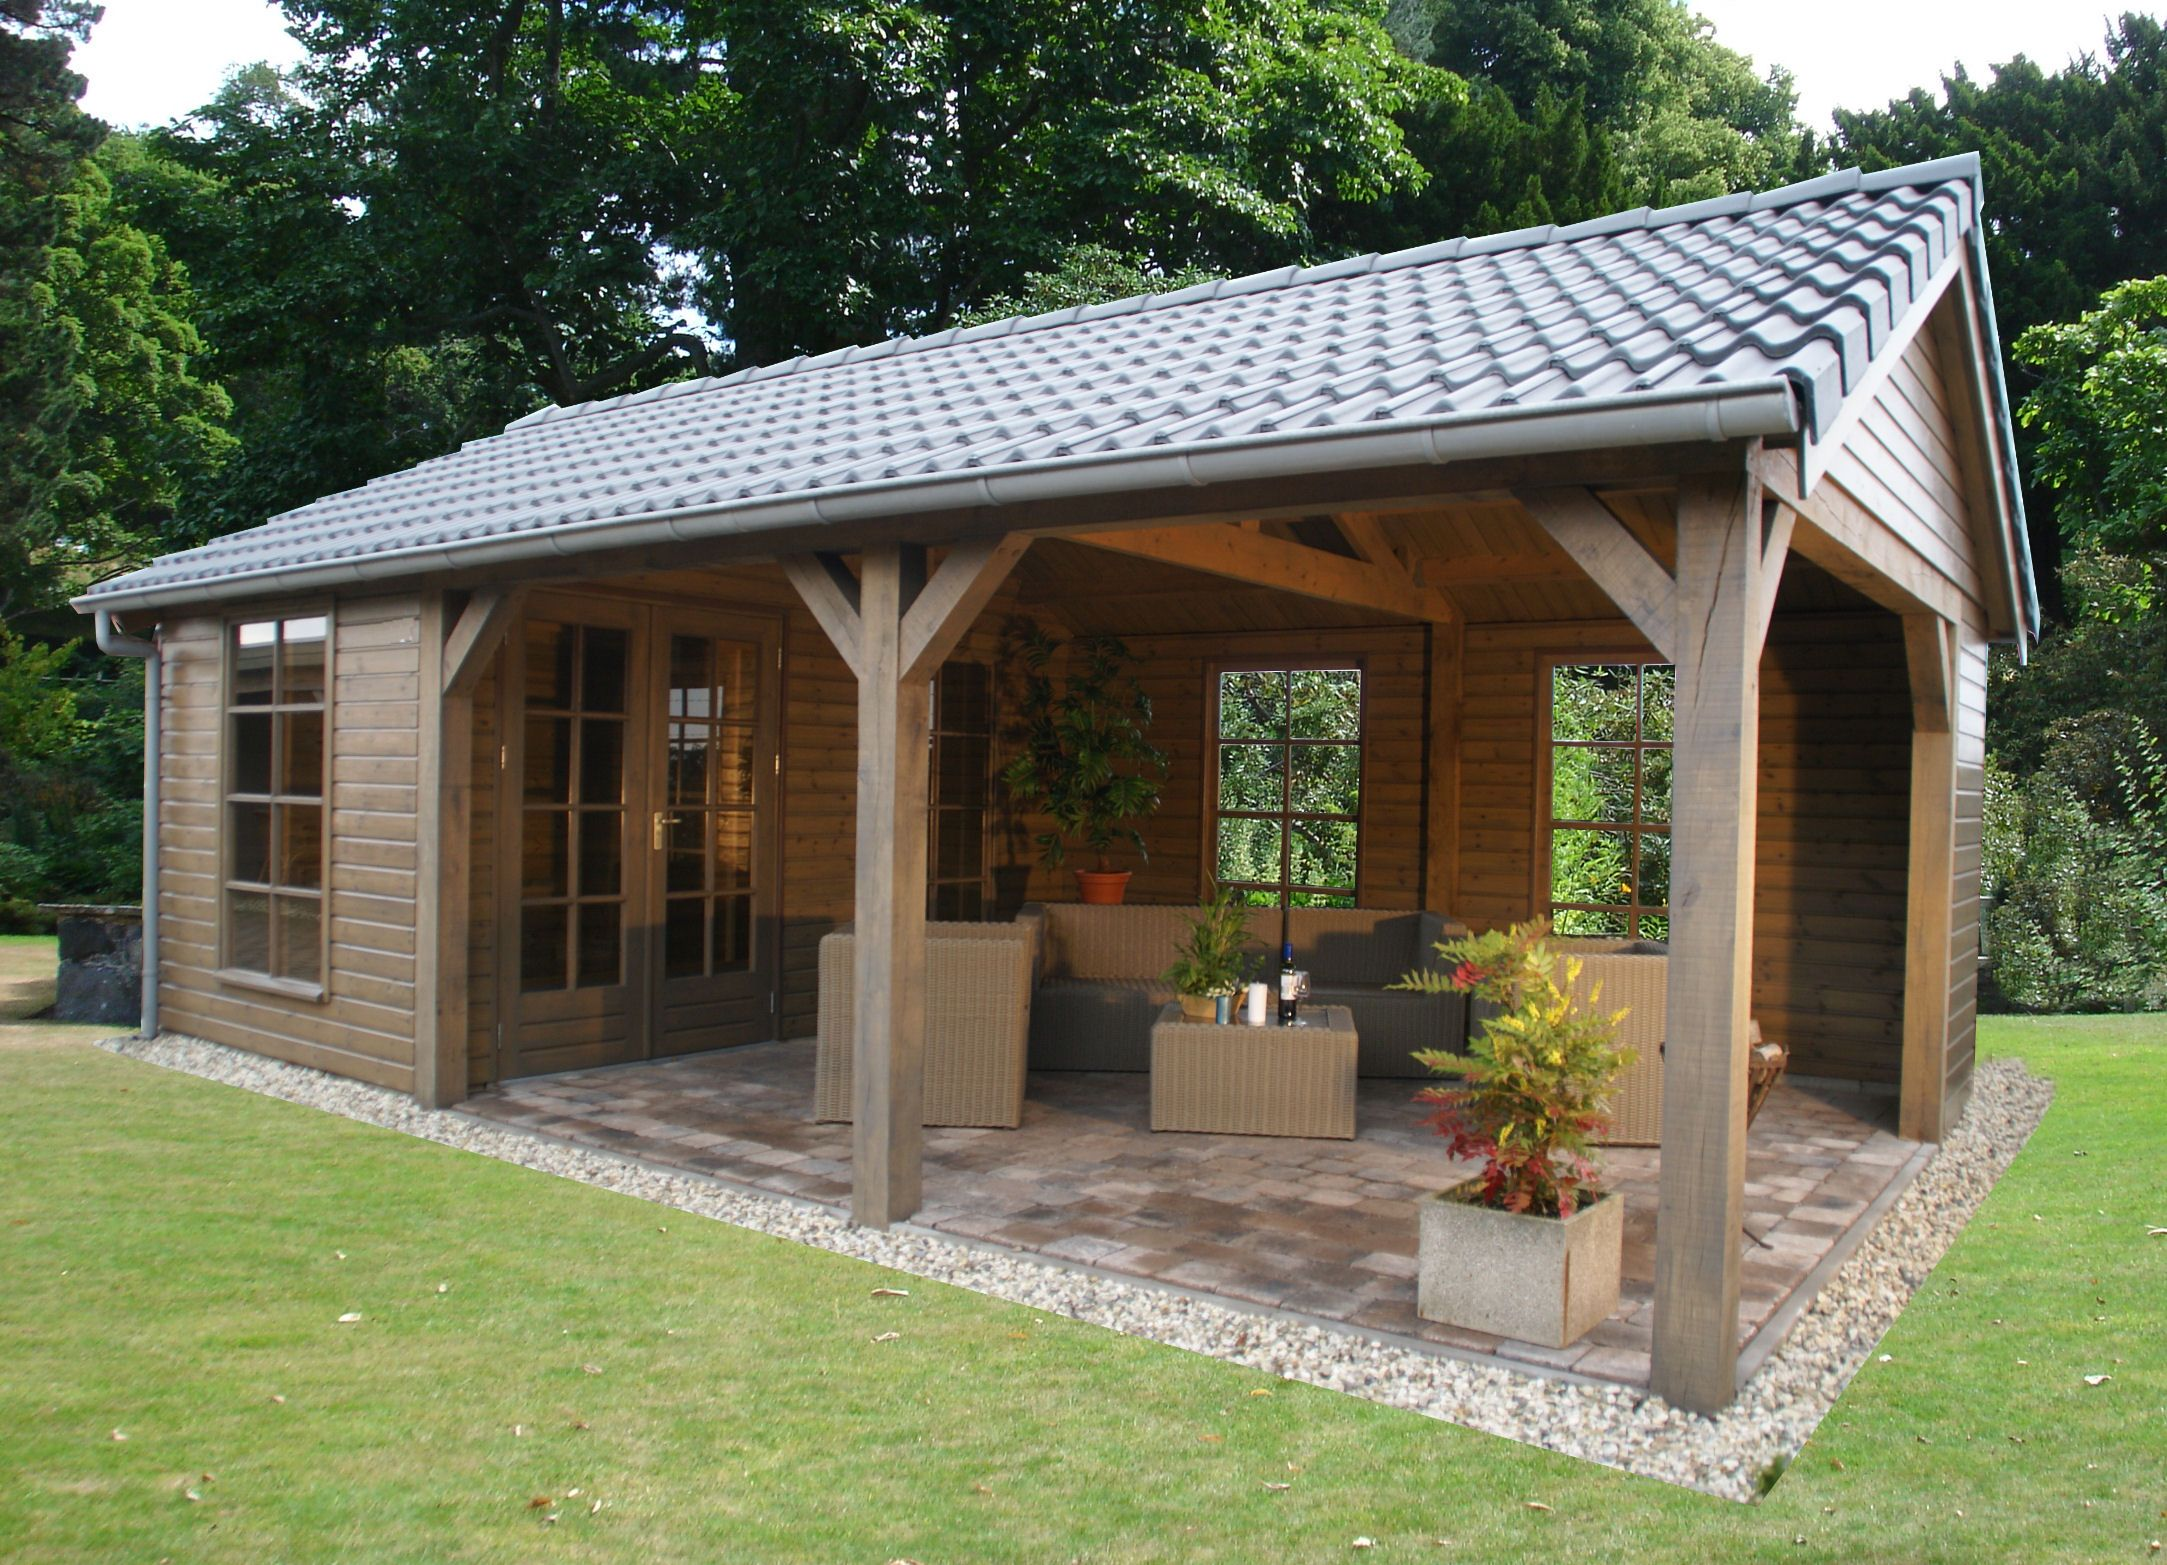 Backyard Pavilion Designs wonderful small backyard gazebo ideas gazebo ideas for backyard pergolas gazebo Find This Pin And More On Shed Ideas